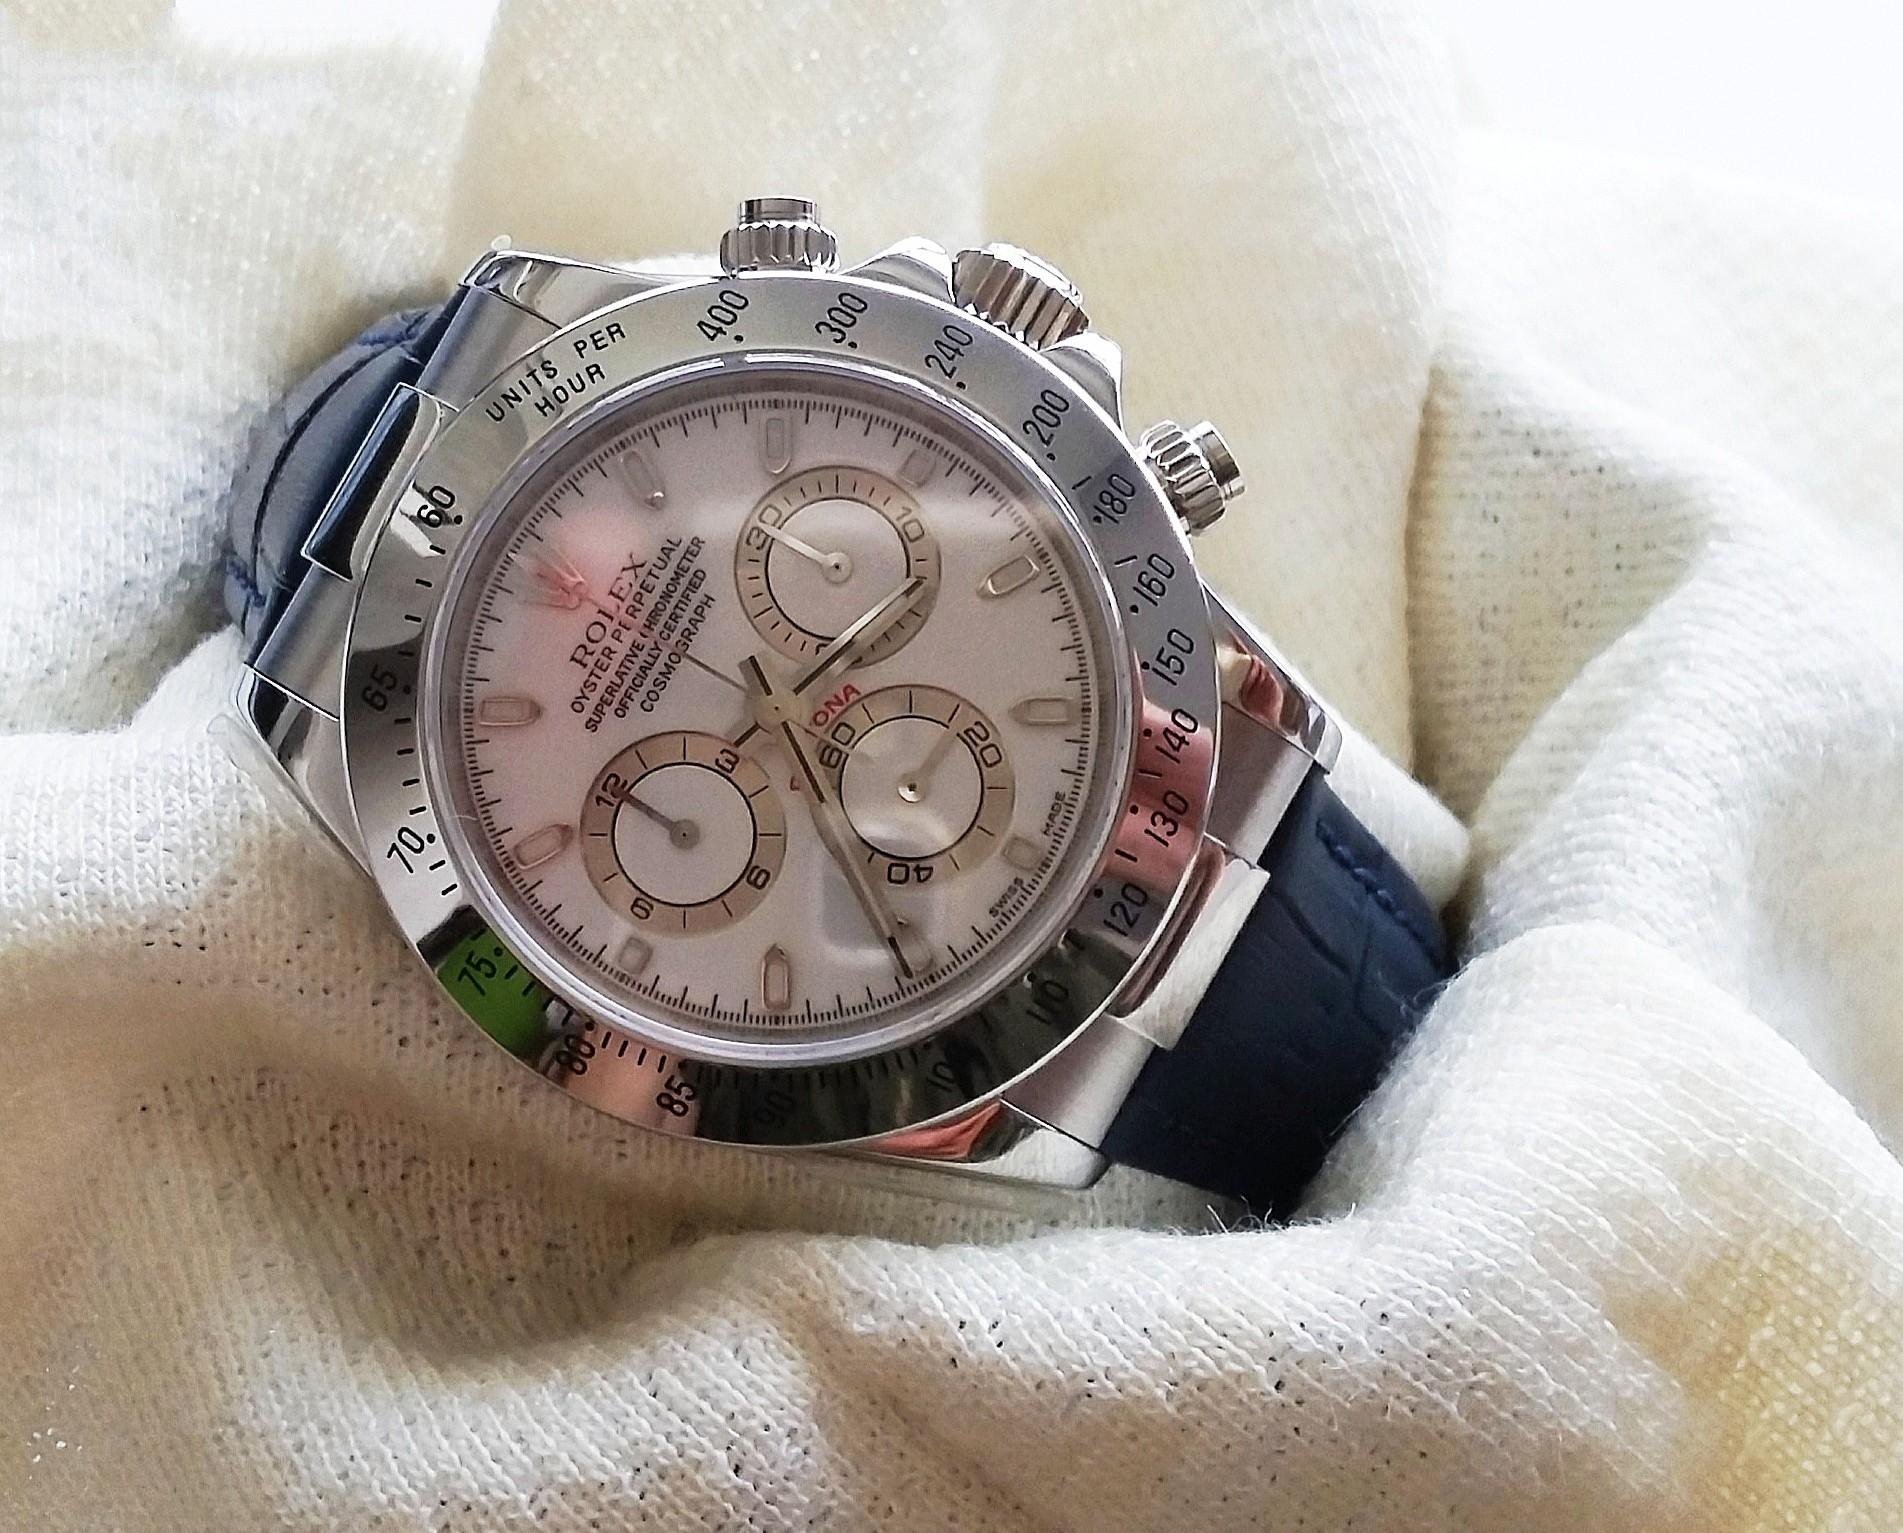 OXFORD BLUE LEATHER STRAP W STAINLESS STEEL ENDLINK & CLASP FOR ROLEX DAYTONA (PRICE INCLUDES FITMENT)